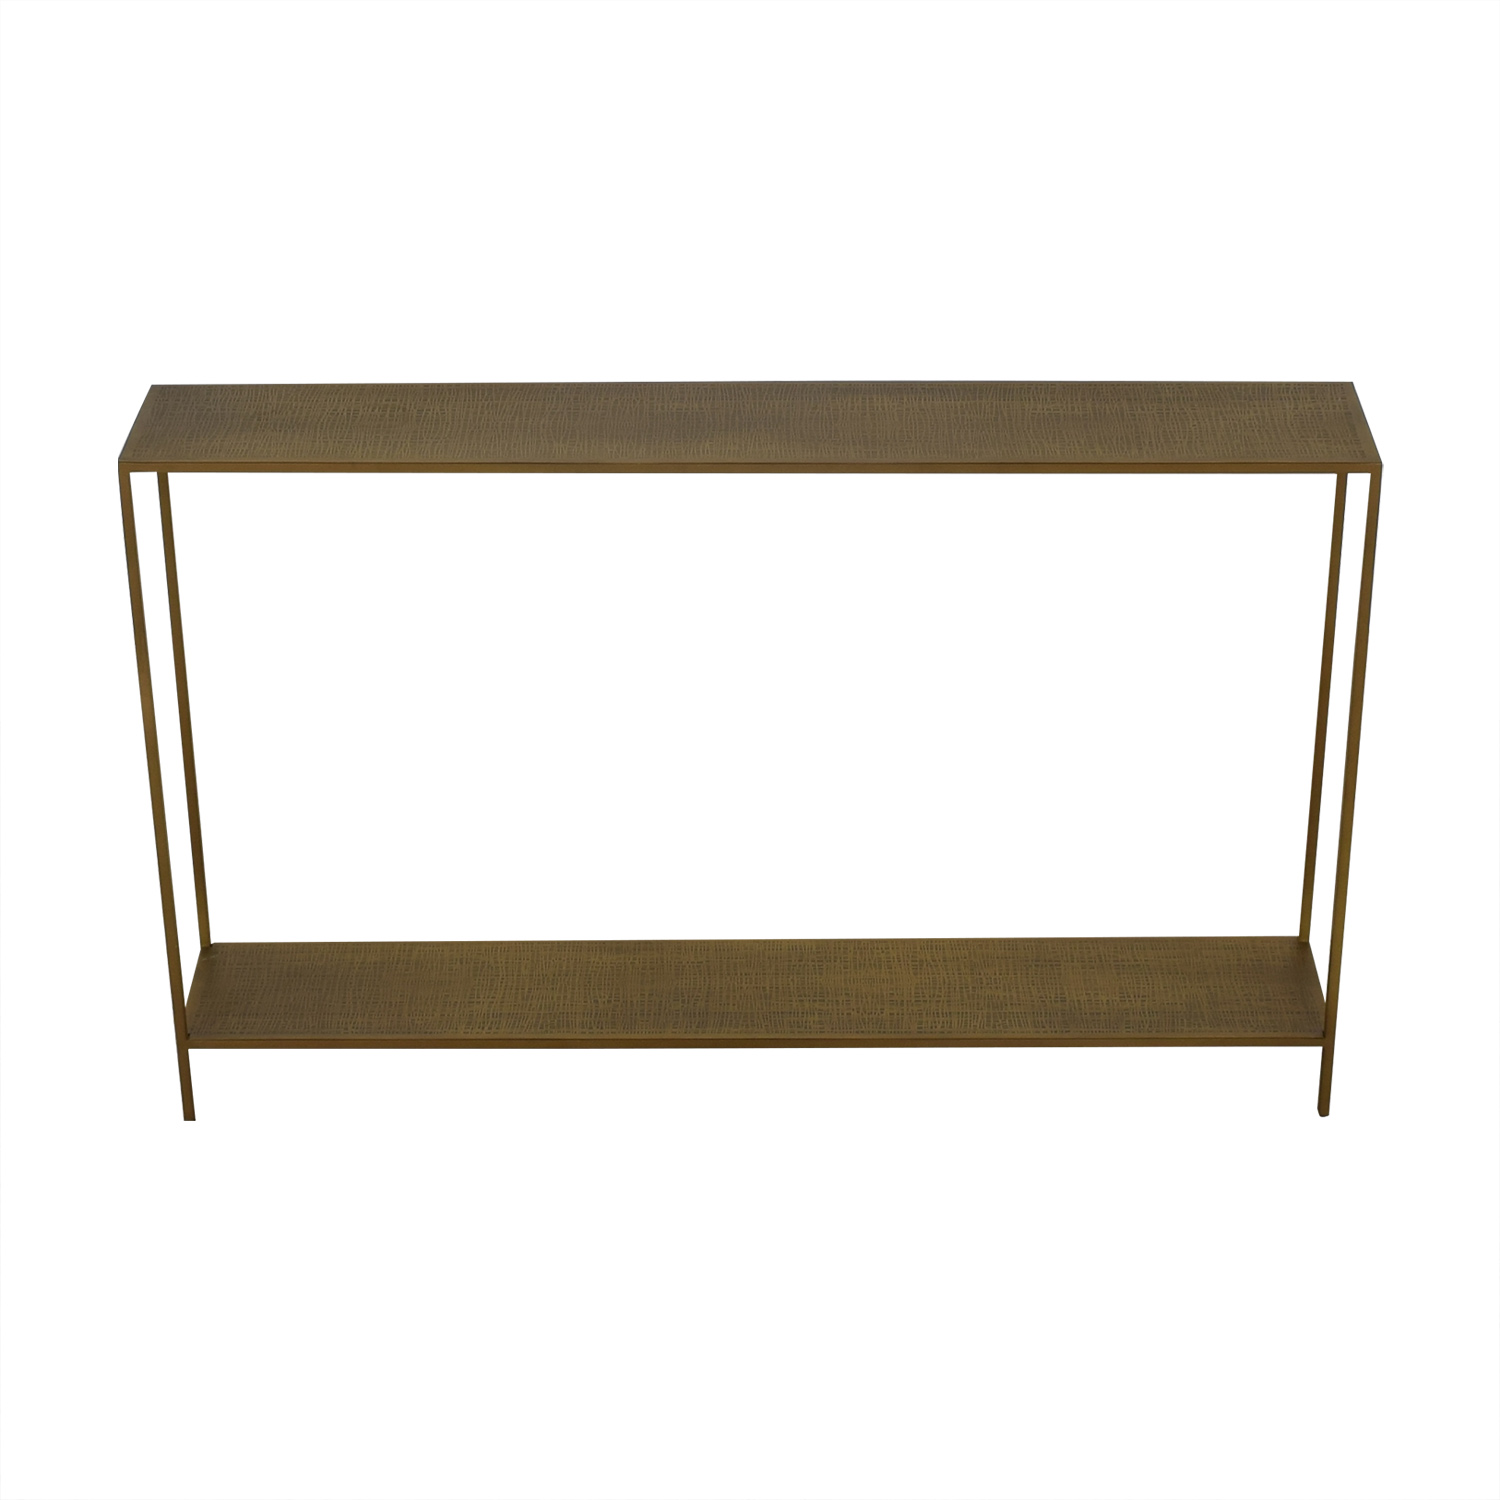 Crate & Barrel Jacque Console Table sale